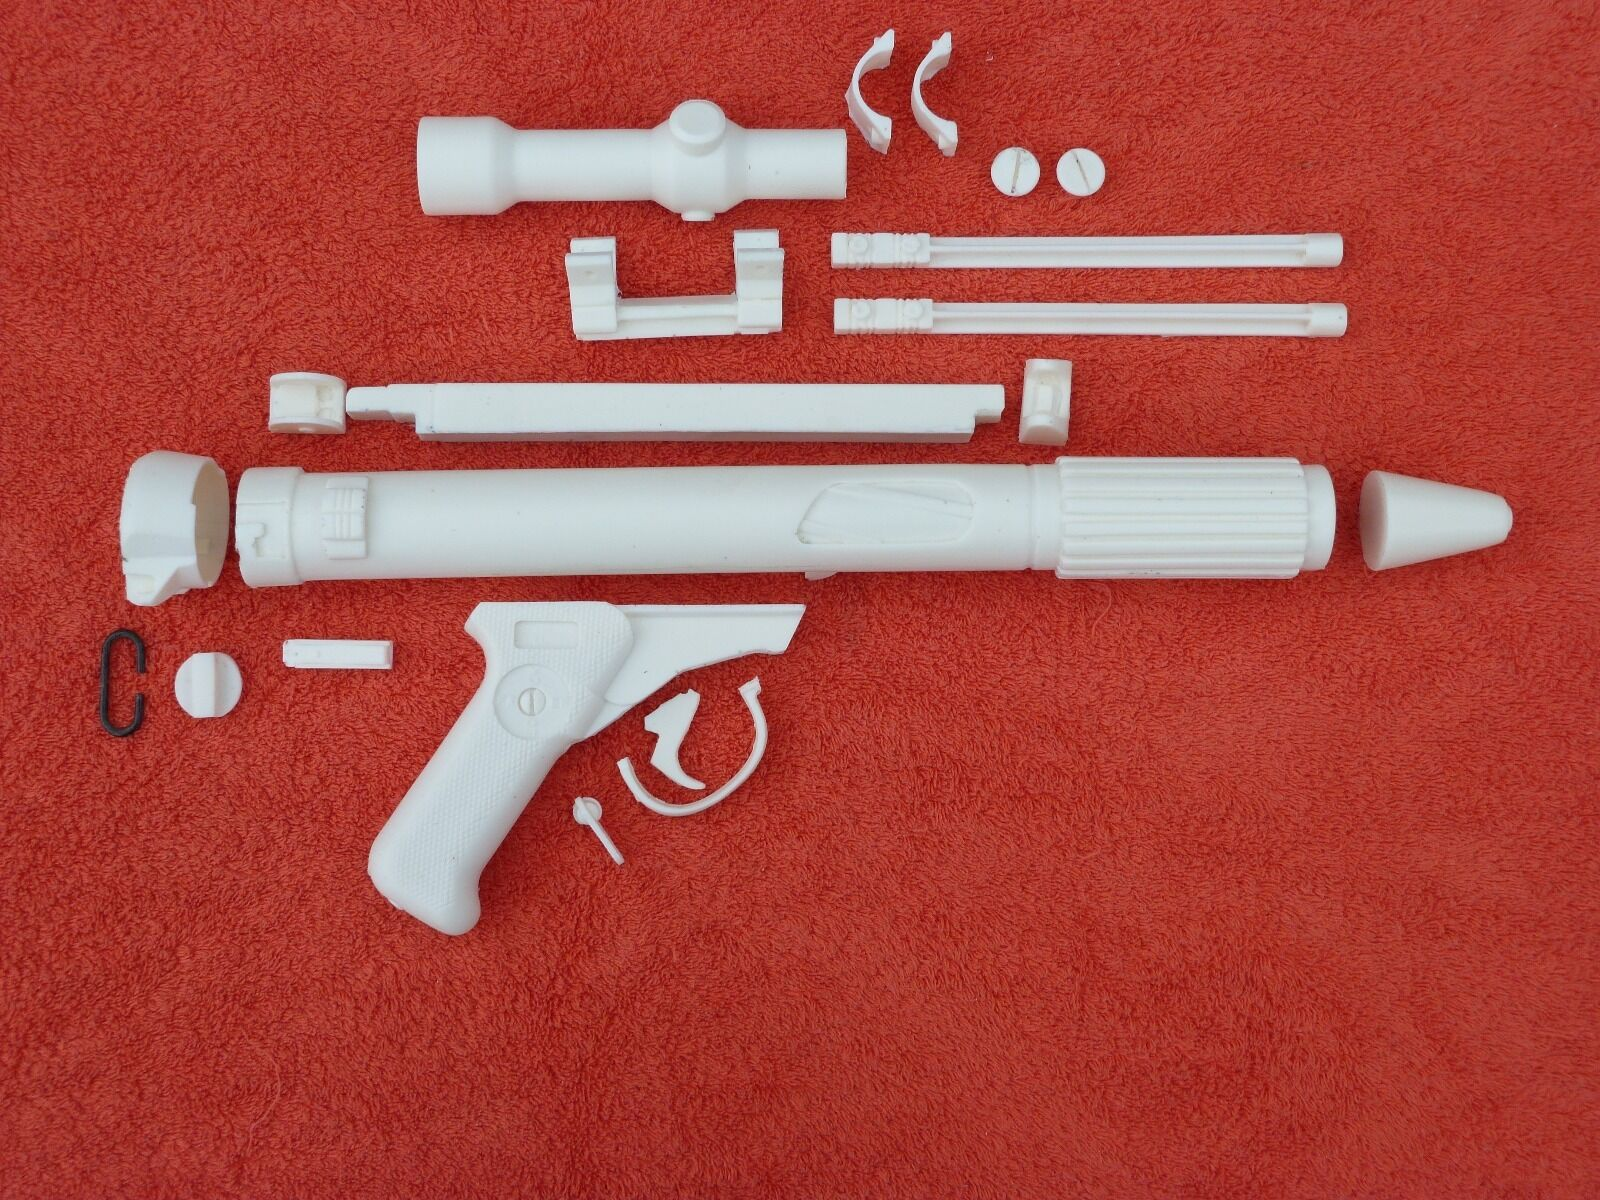 Star Wars Rebel Blaster DH17 Episode 4  A New Hope 3D Model Kit Prop Replica